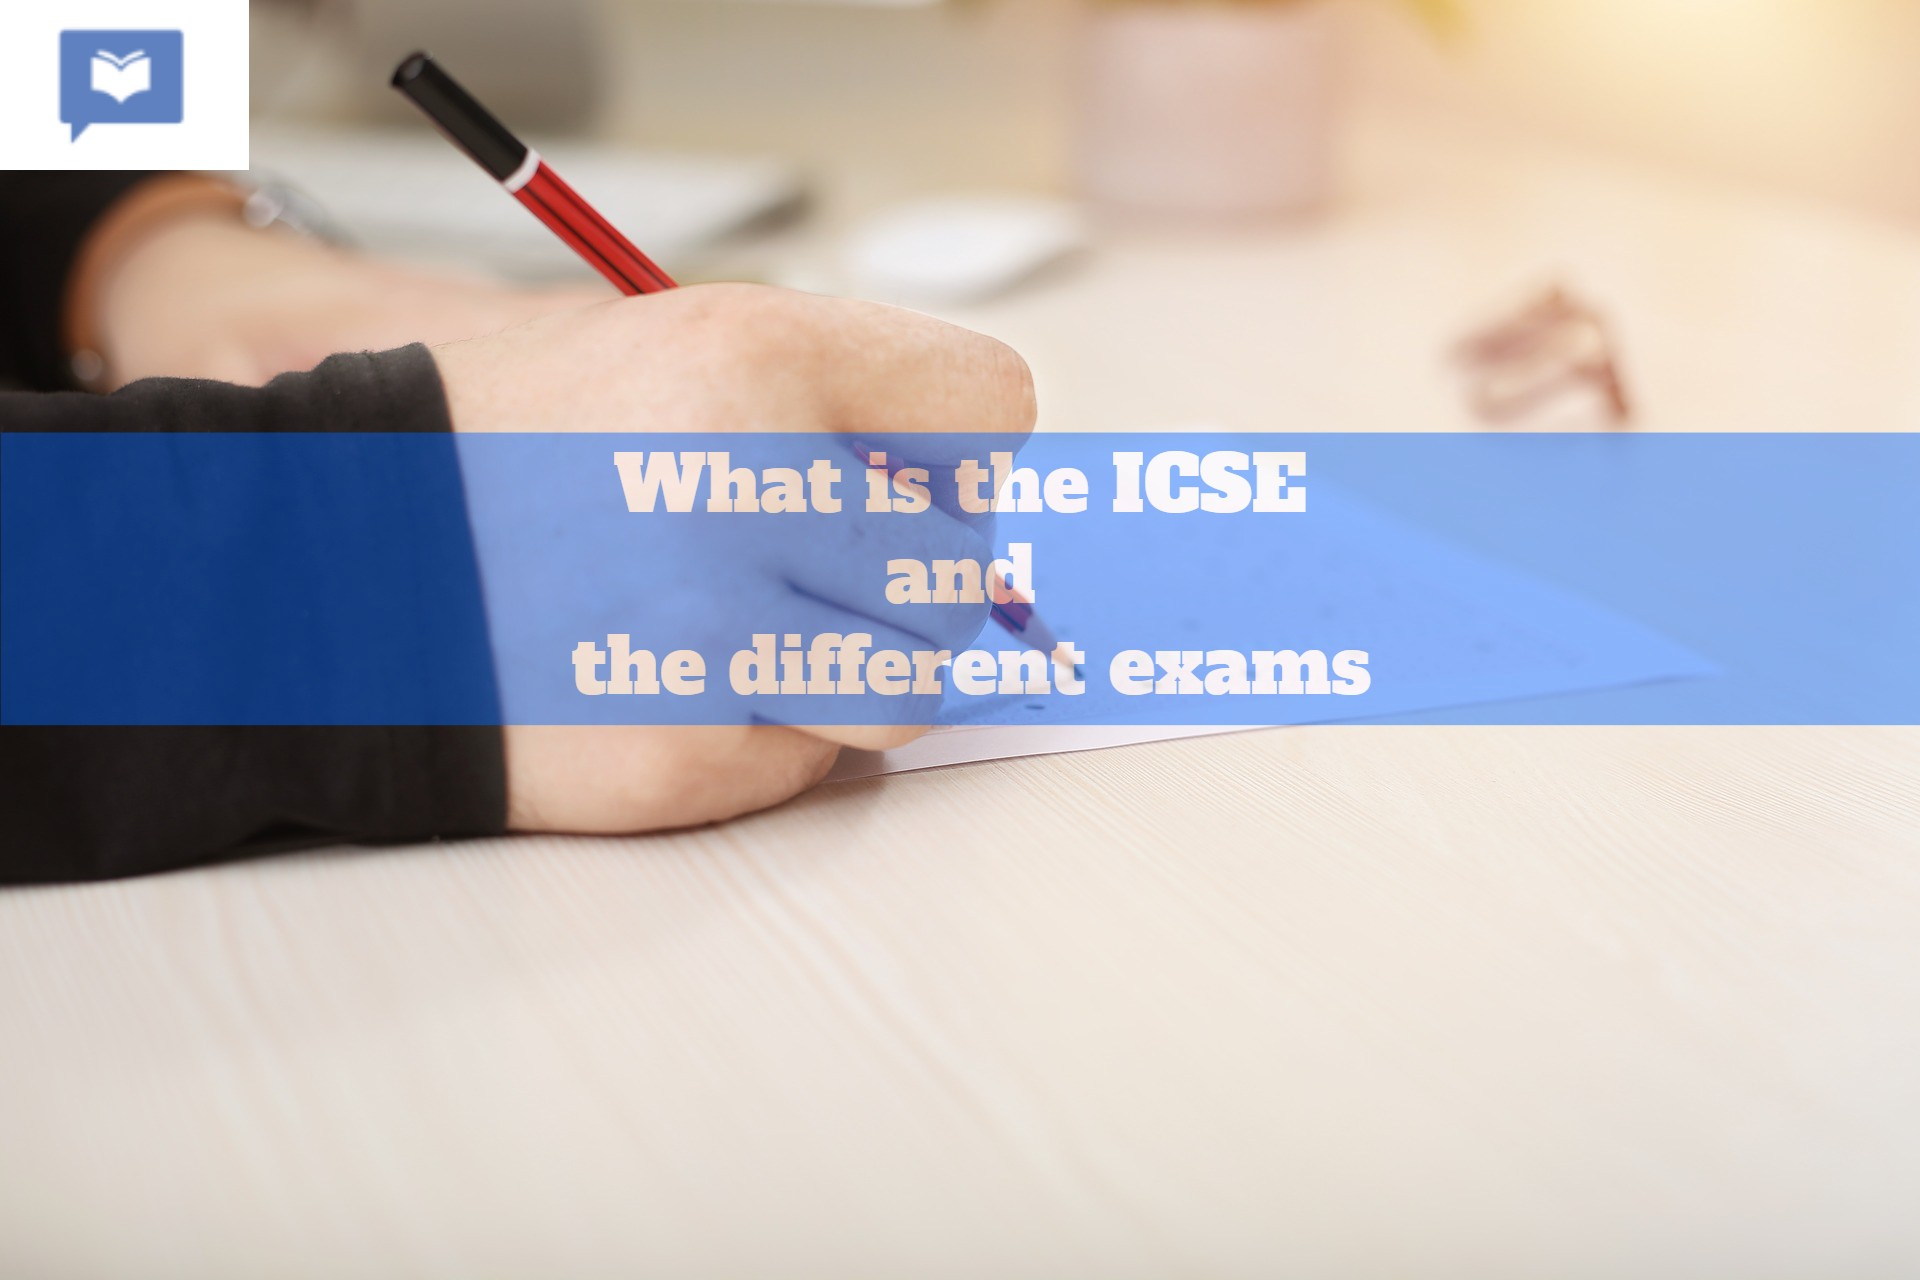 What is the ICSE and the different exams